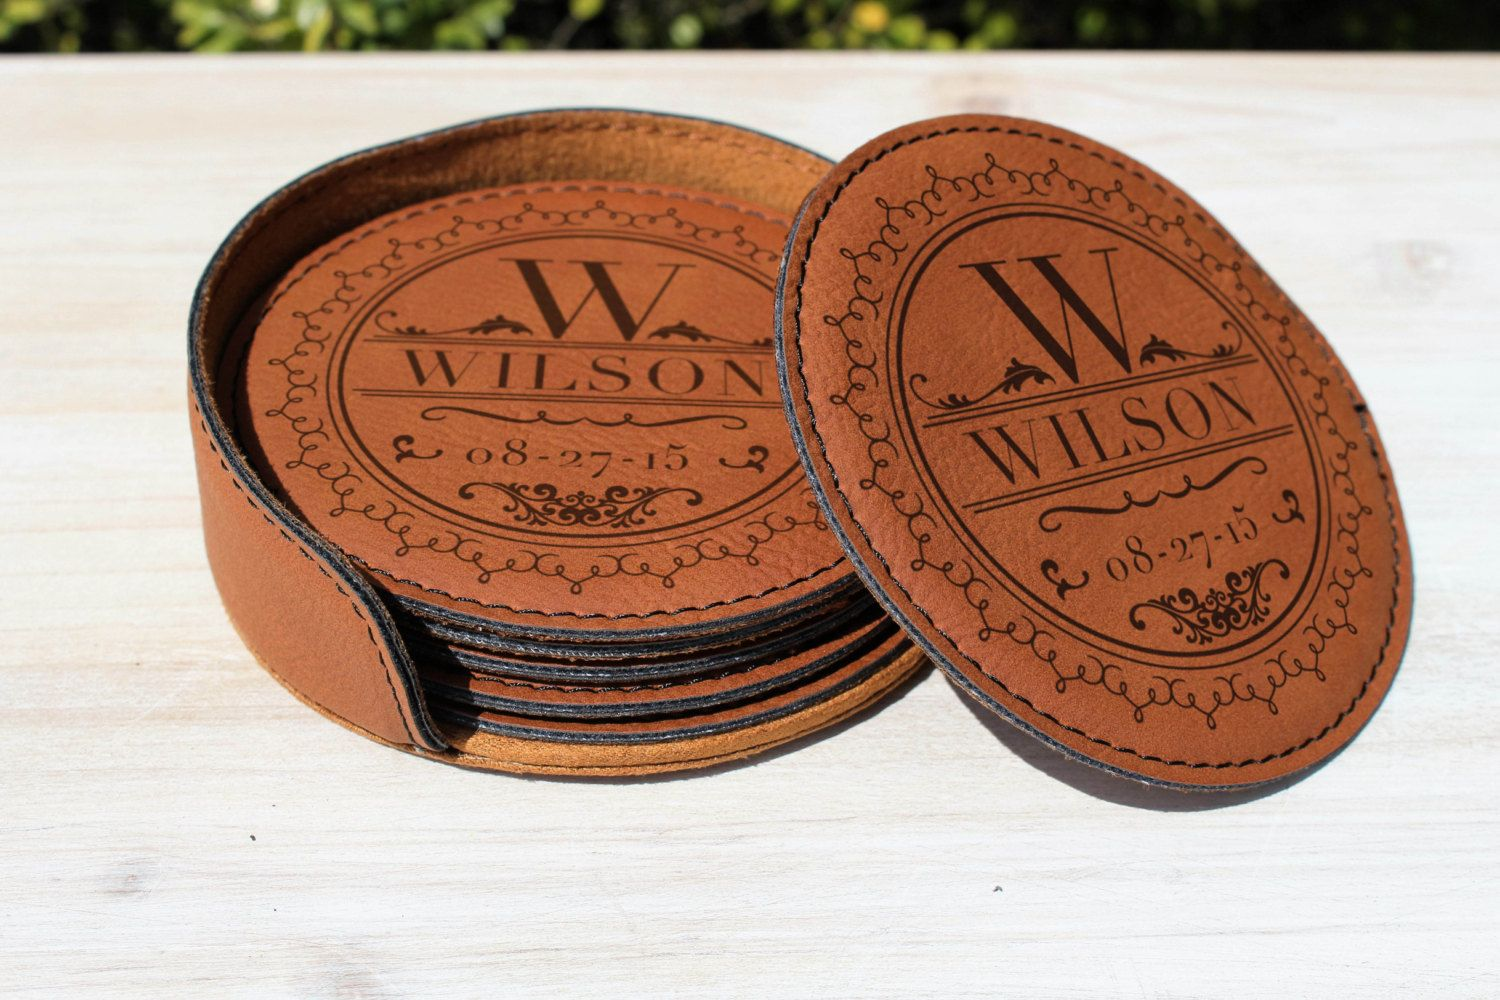 9th Anniversary Leather Gift Wedding Coasters Set Of 6 With Holder And Personalized Laser Engraving